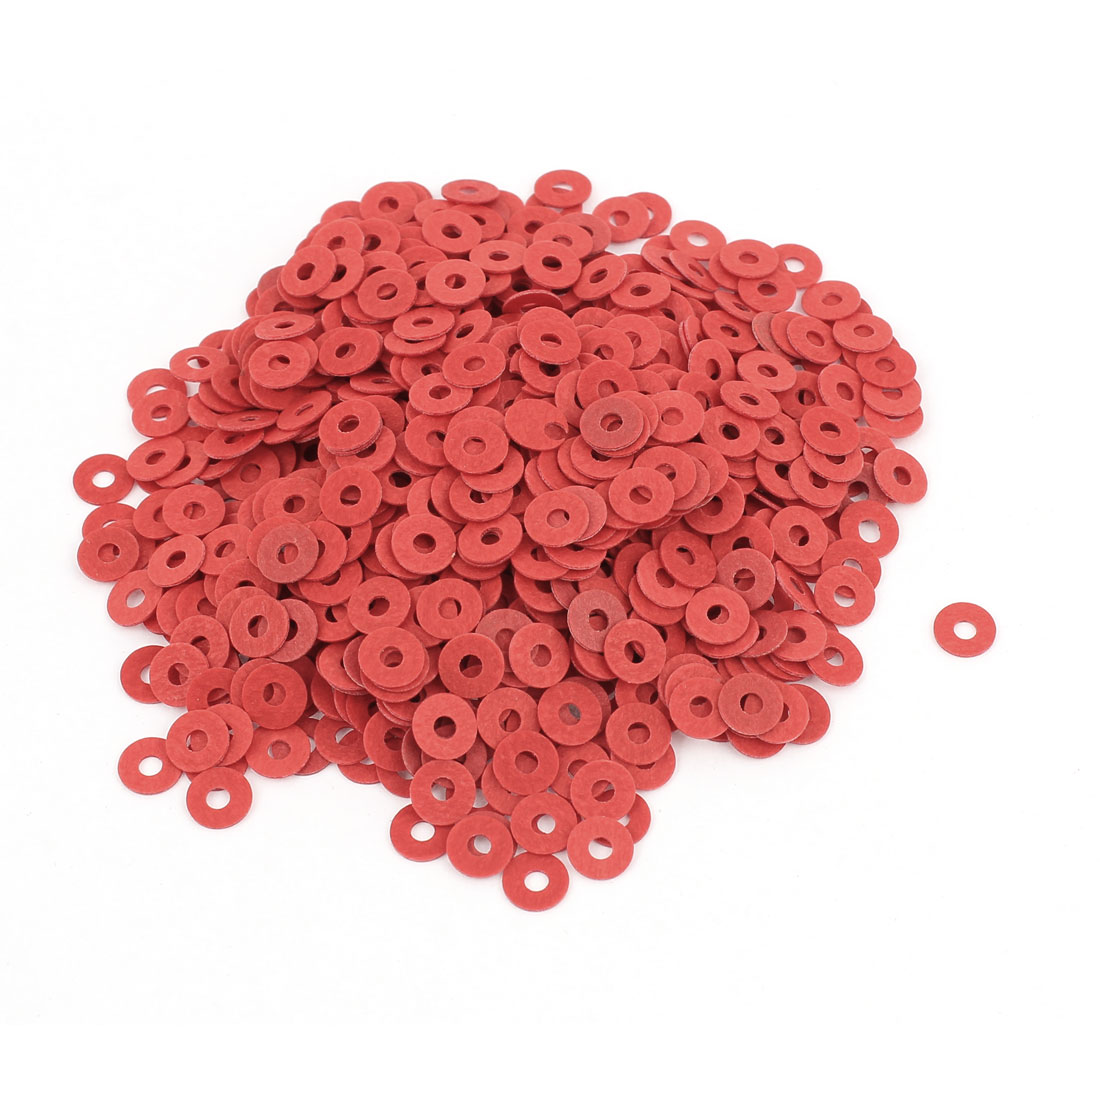 Fiber Flat Insulating Washer Ring 2mmx6mmx0.5mm 1000Pcs Red for Screws